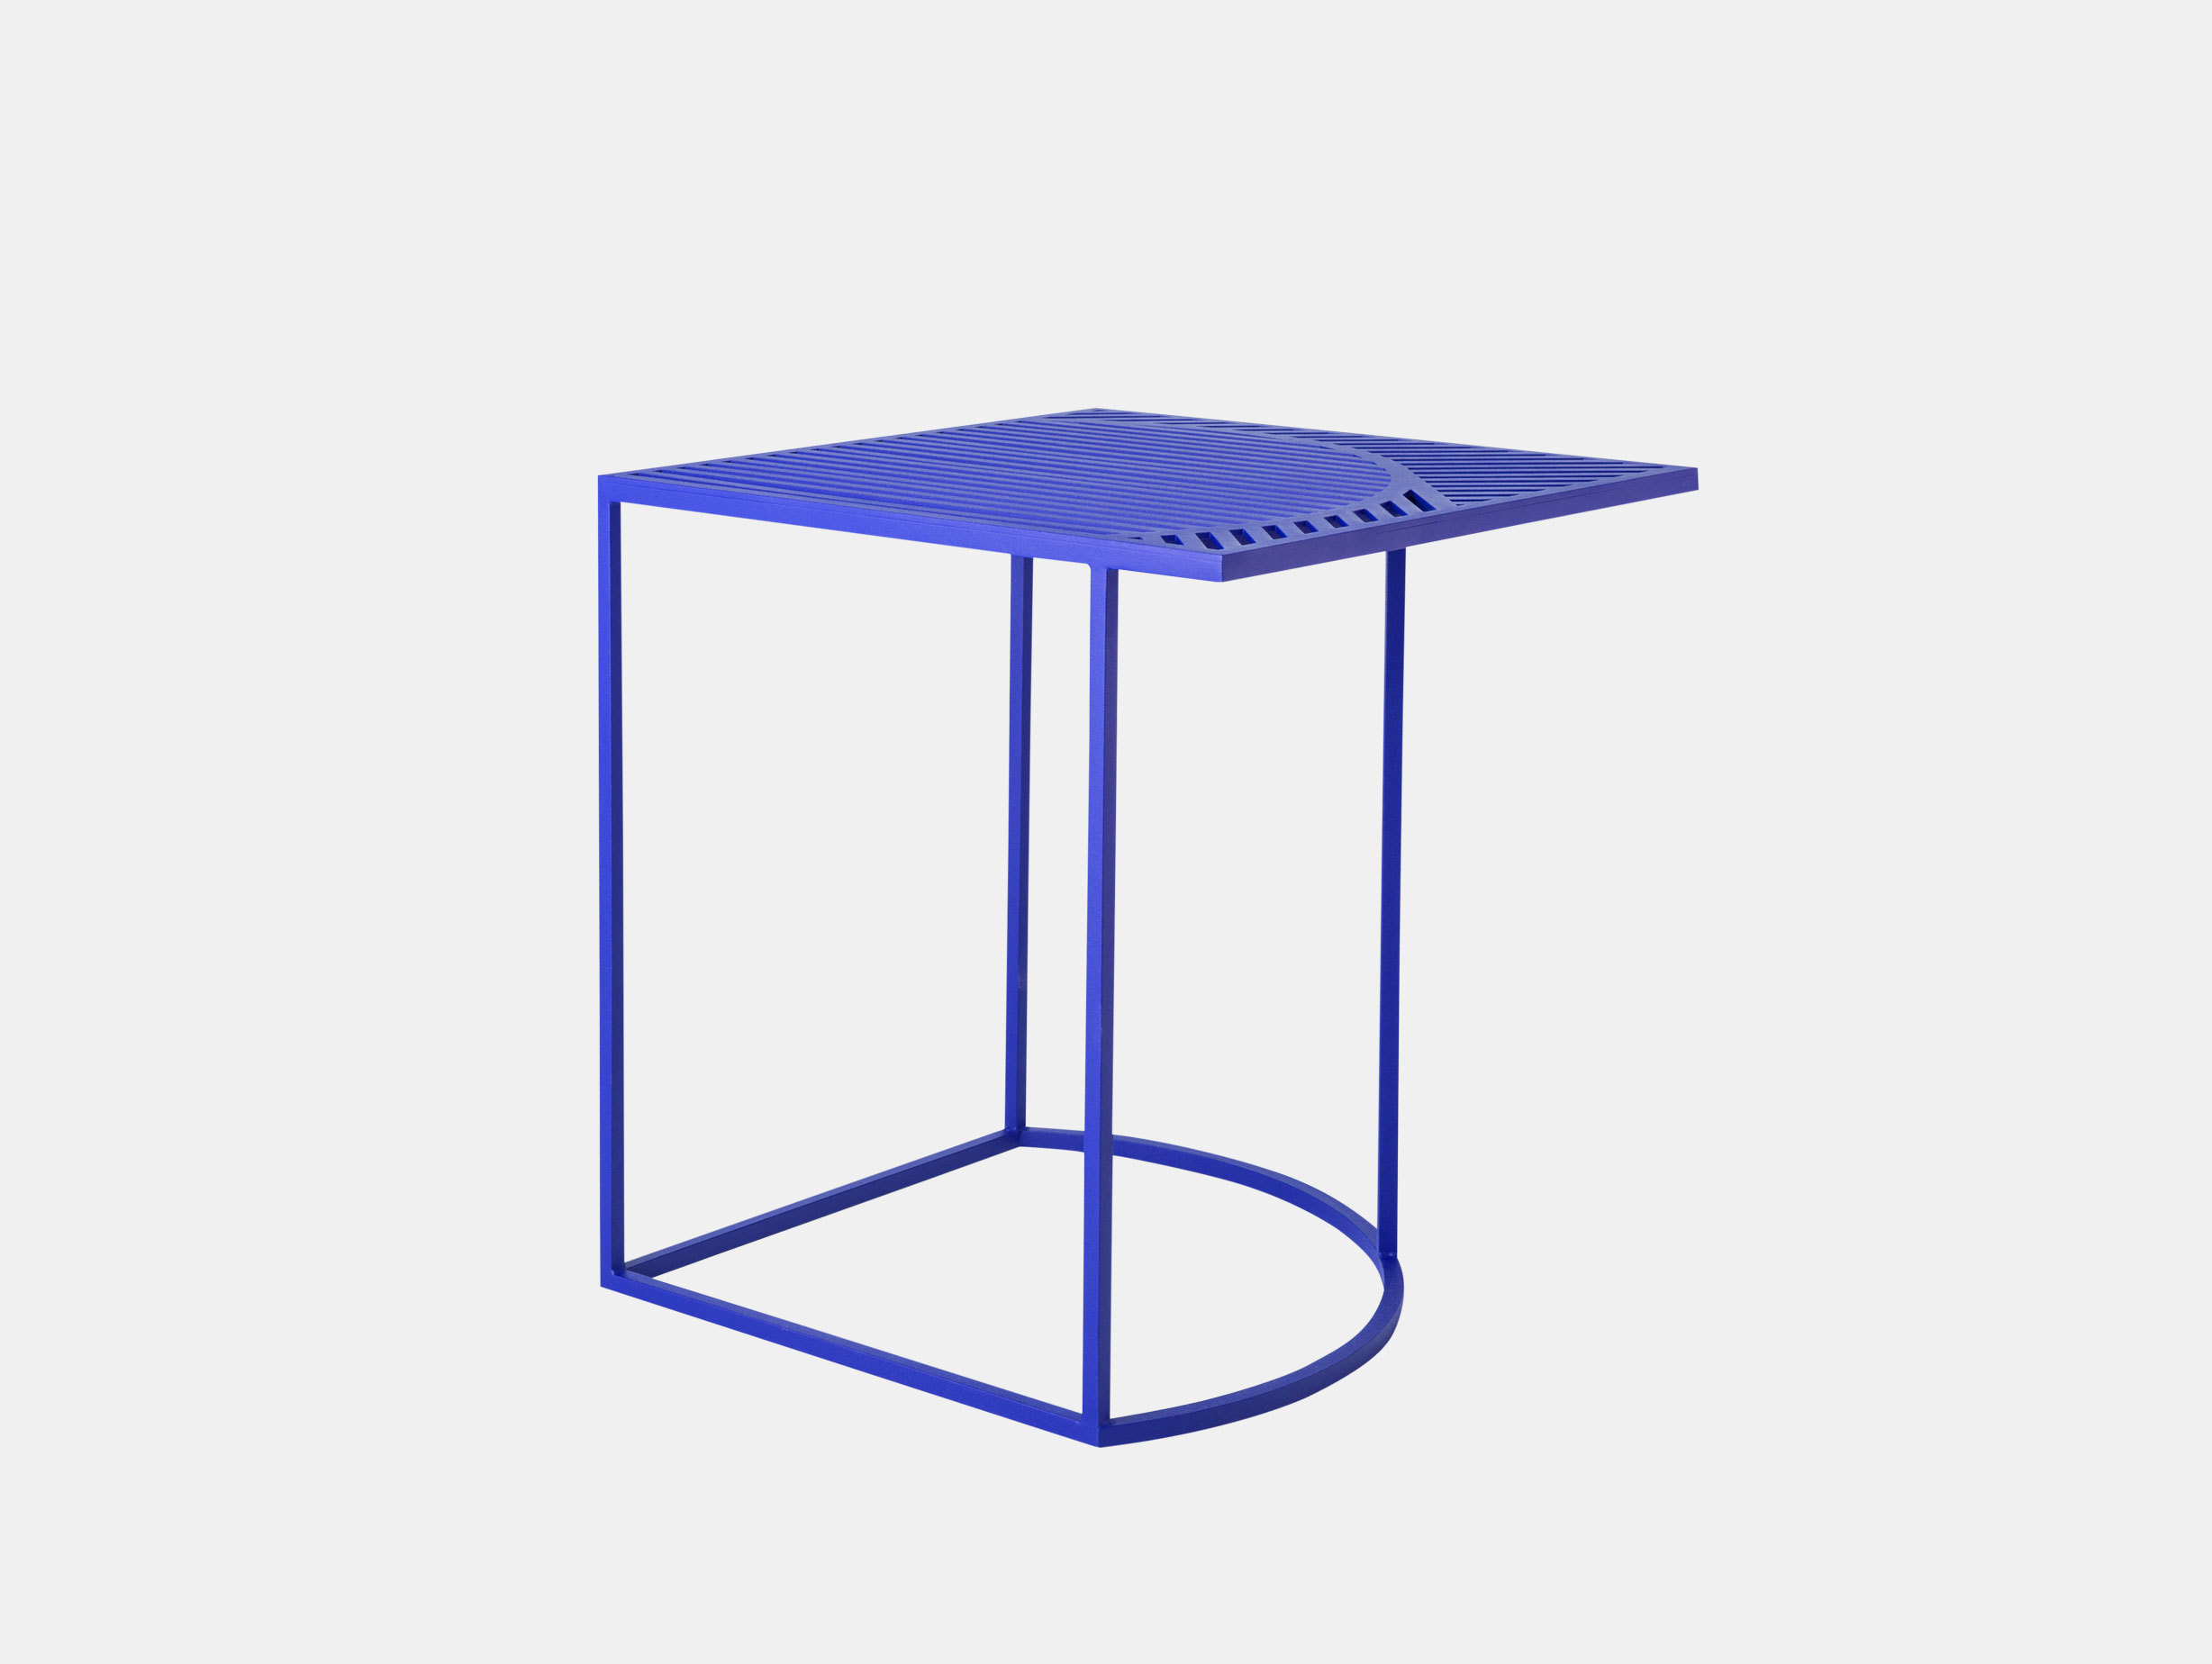 Petite Friture Iso Side Table Square Blue Pool